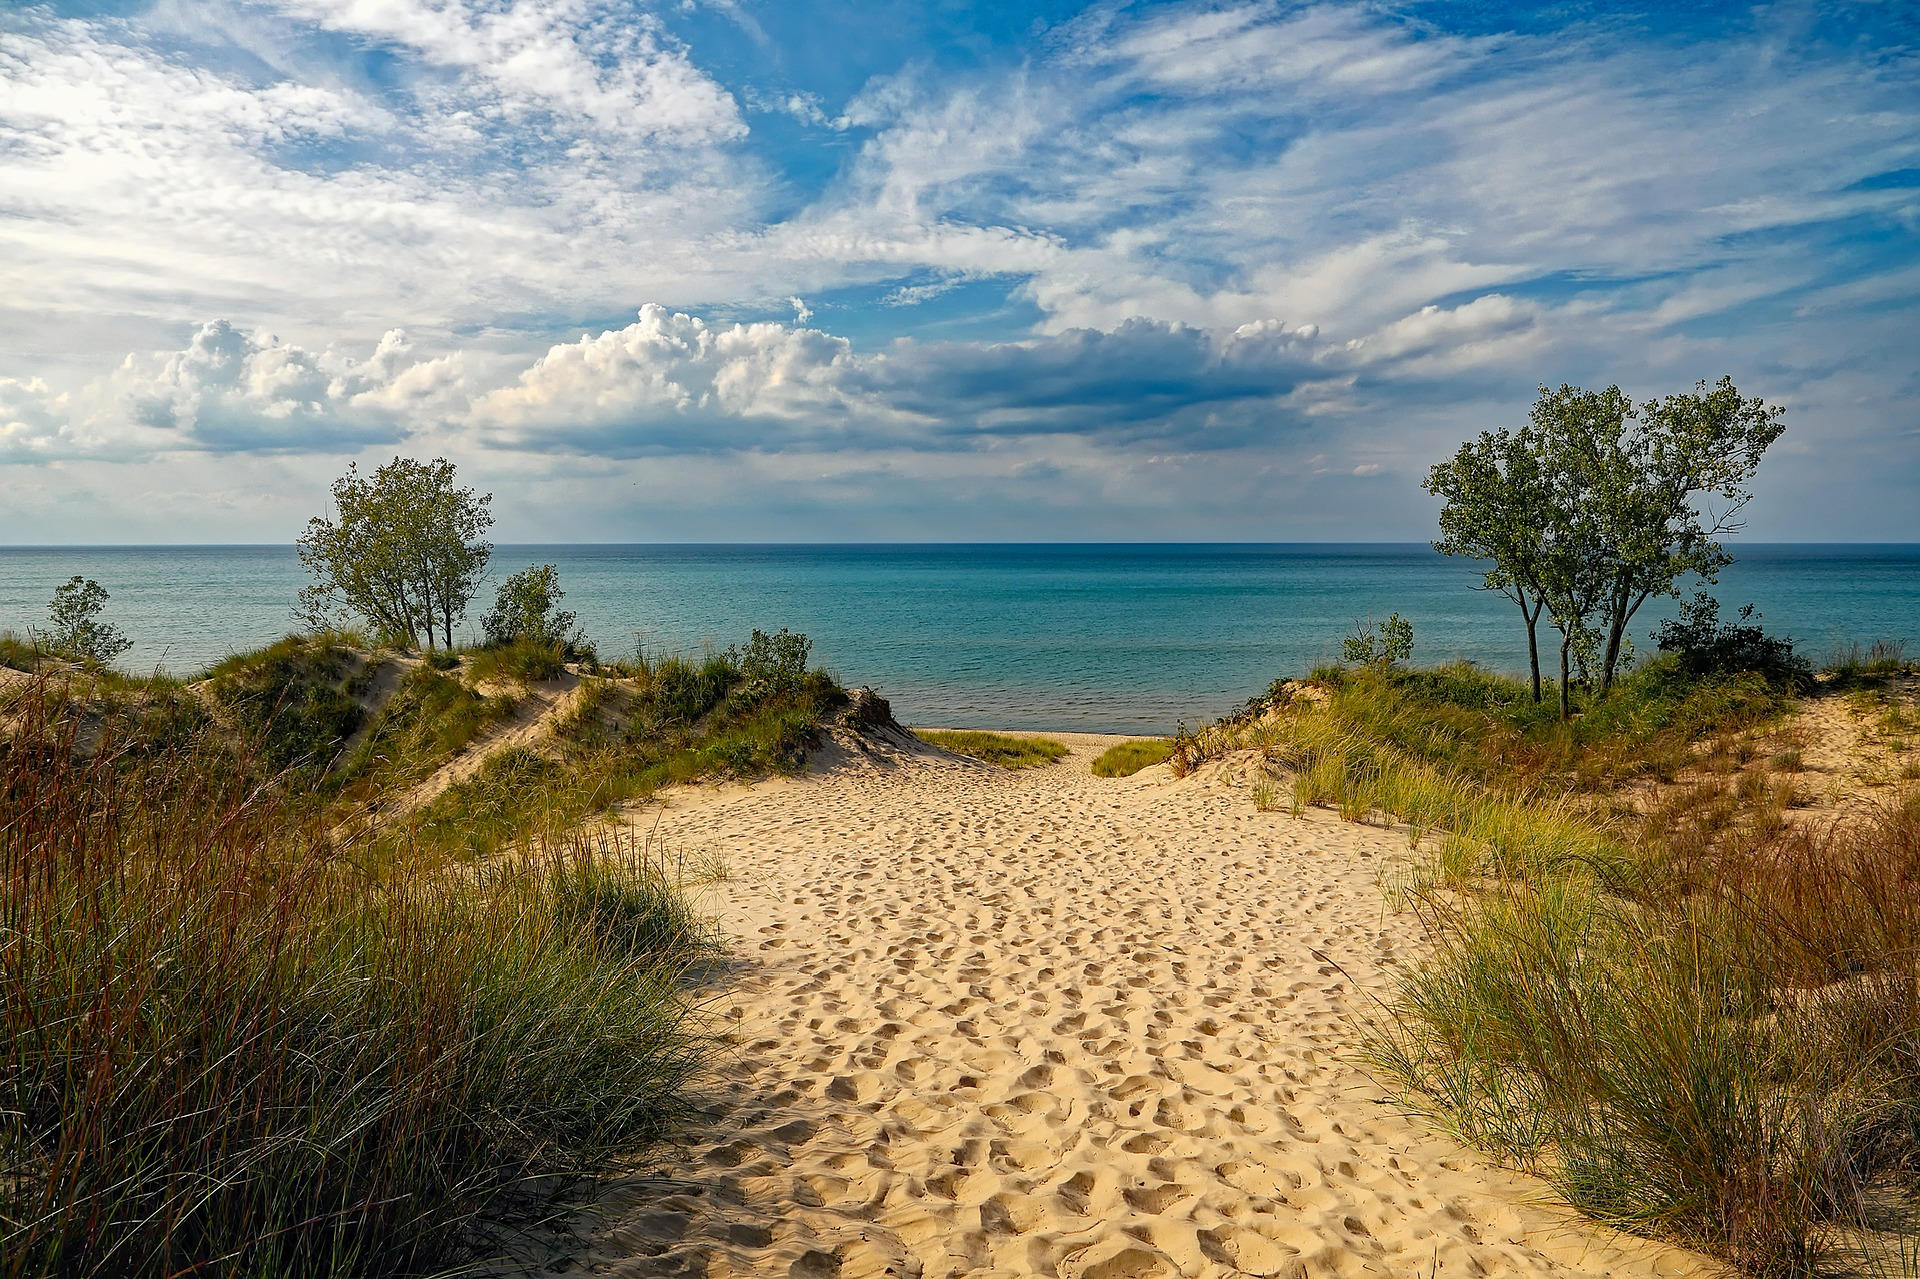 Take a dip in Lake Michigan at Indiana Dunes National Park